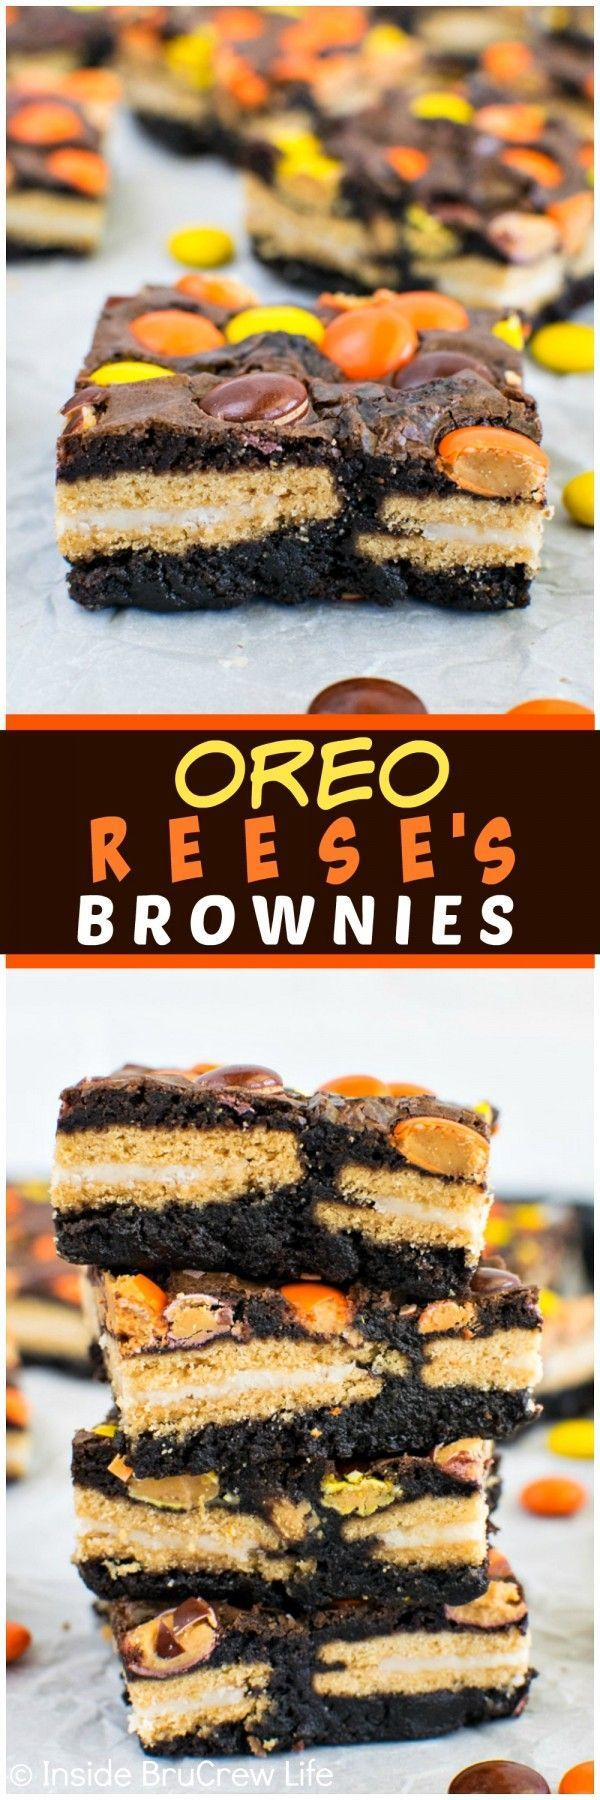 Oreo Reese's Brownies - these easy brownies are loaded with cookies and candies…